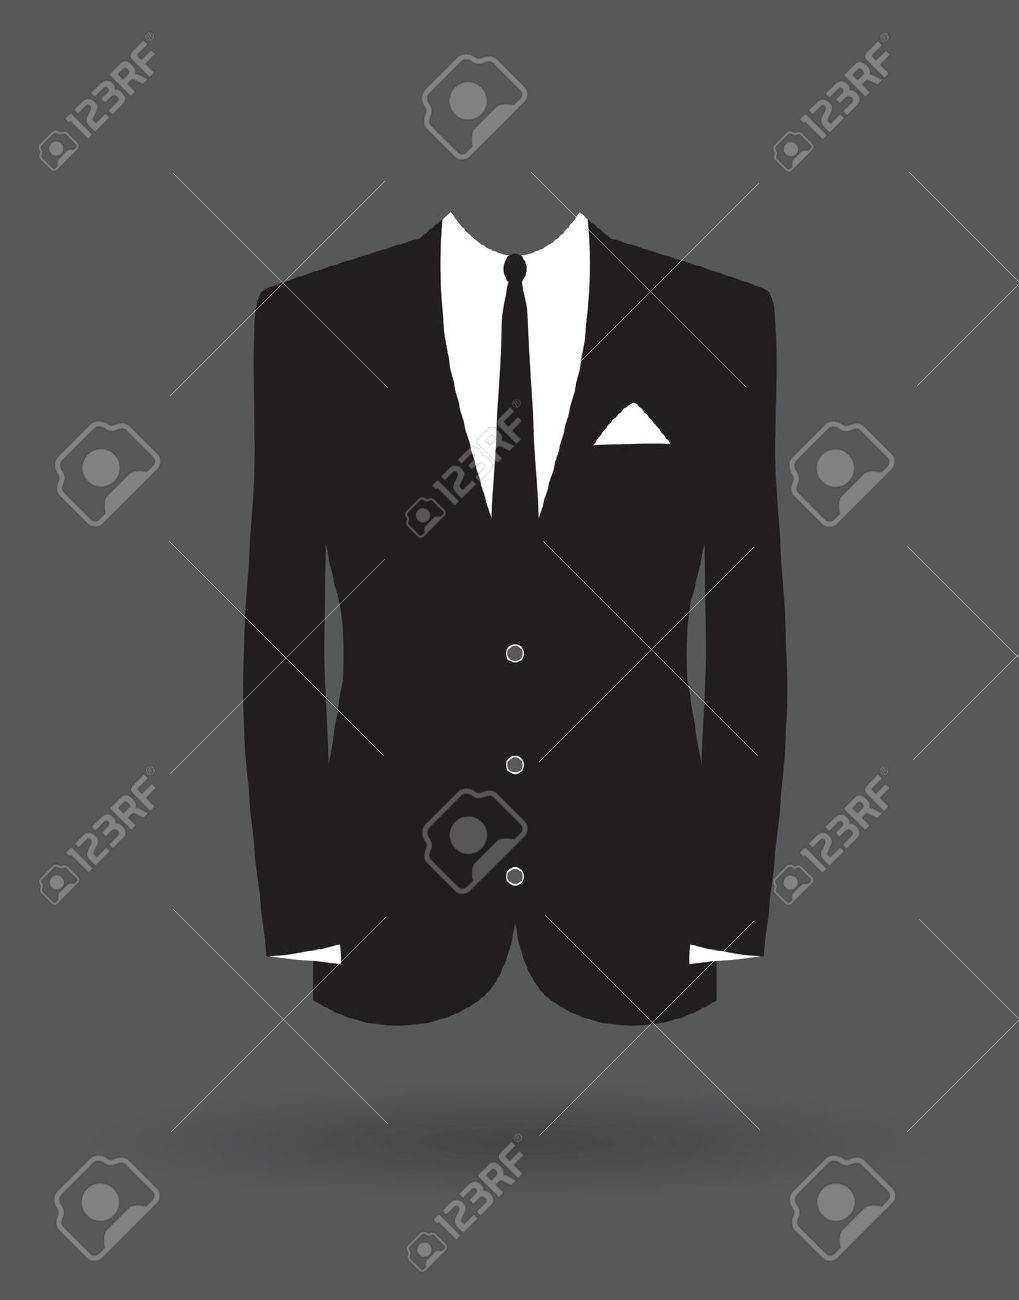 grooms suit jacket outfit - 37177176